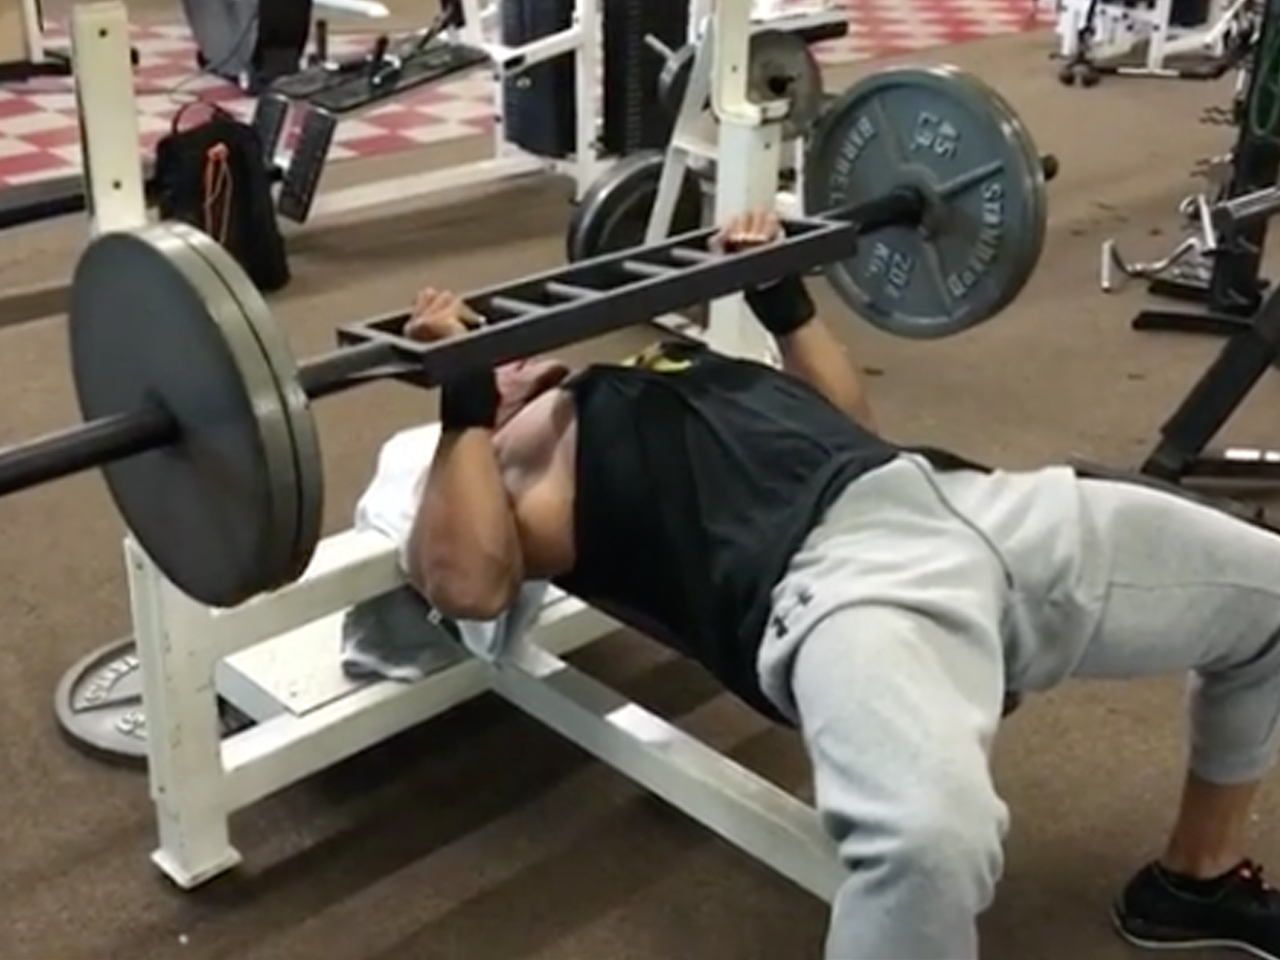 Dwayne Johnson Preps For Rampage Filming With An Epic Bench Press Workout